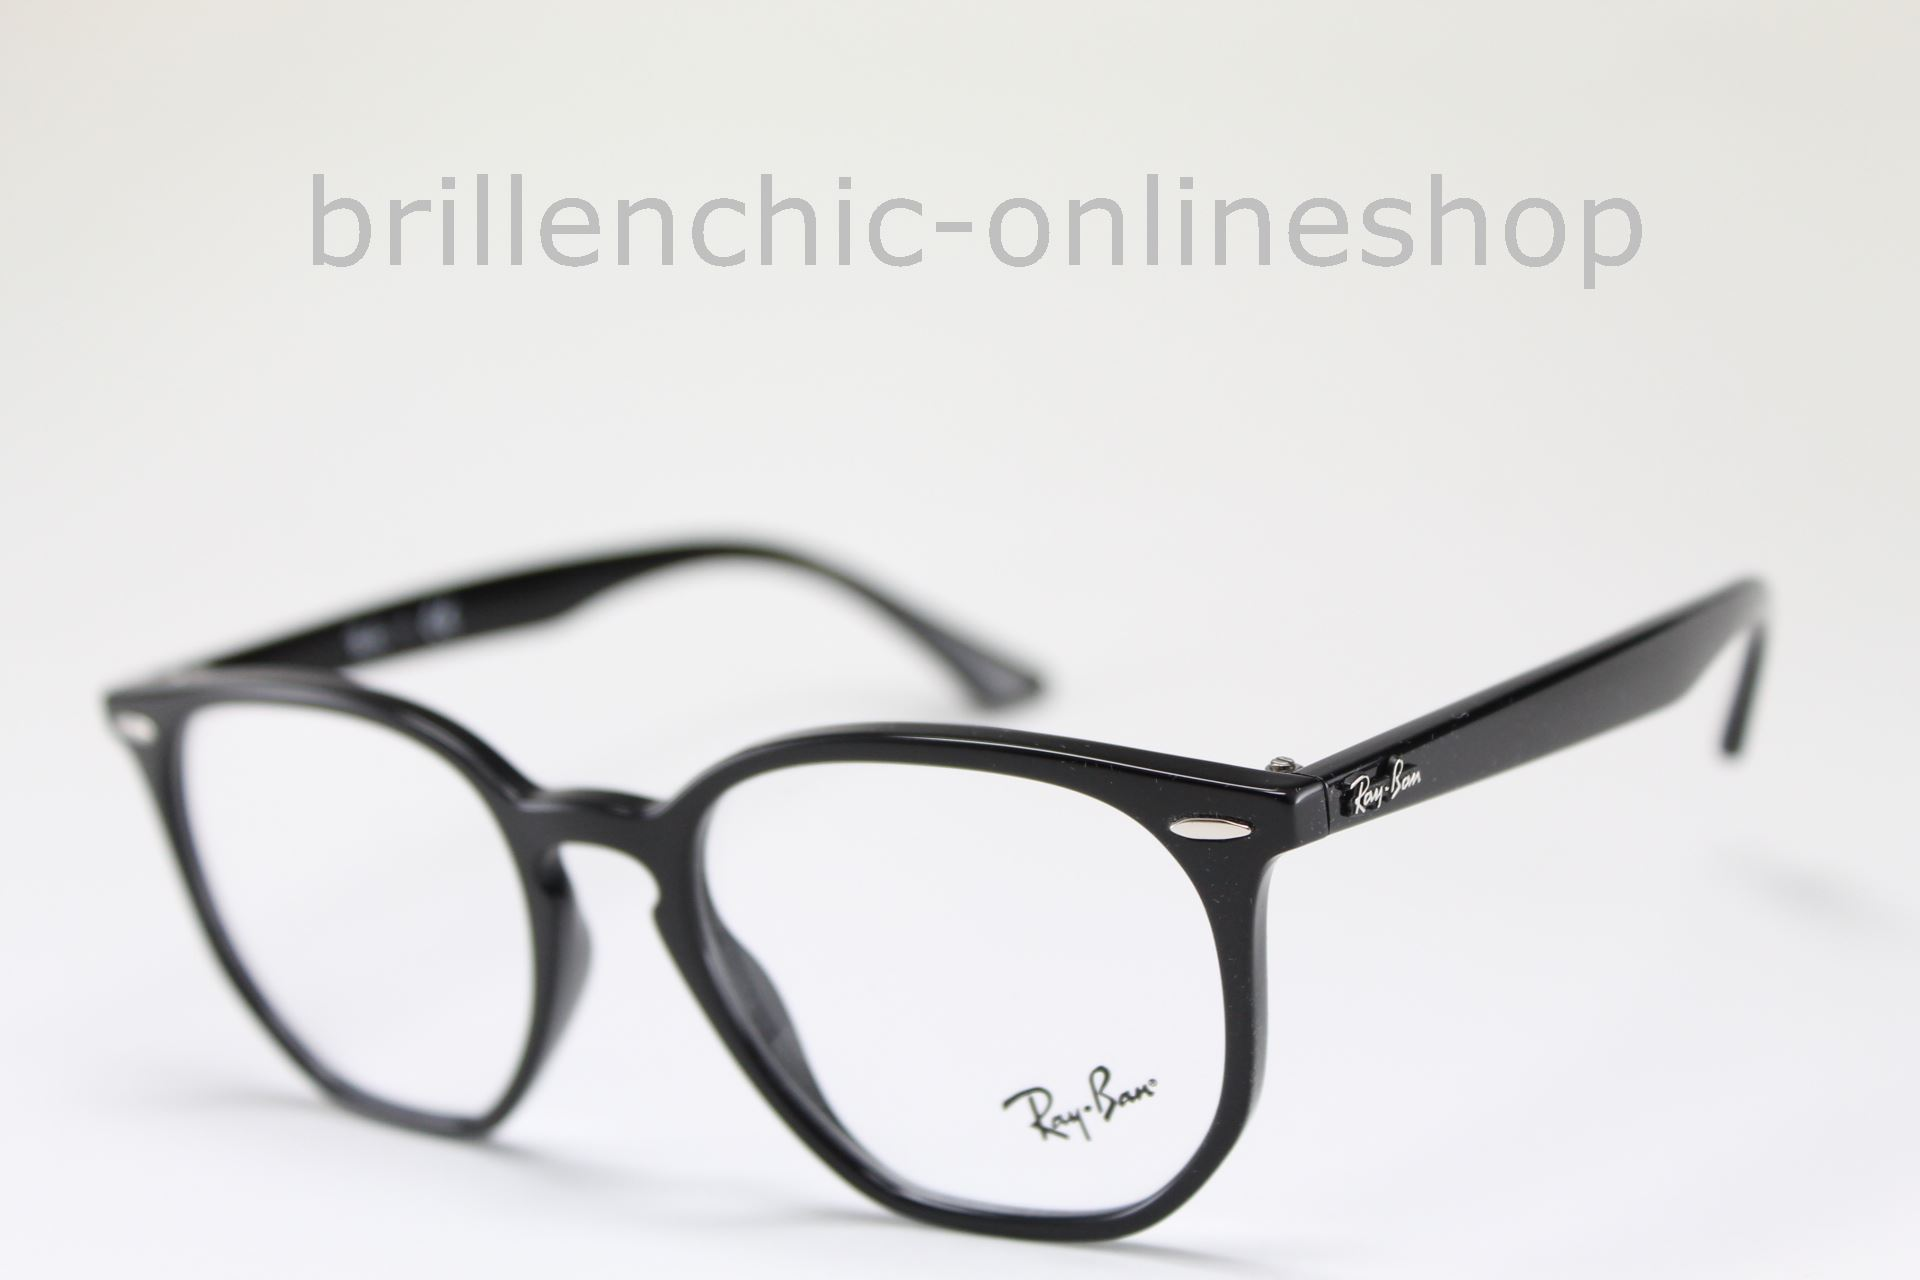 0ccc58d97f Brillenchic-onlineshop in Berlin - Ray Ban RB 7151 2000